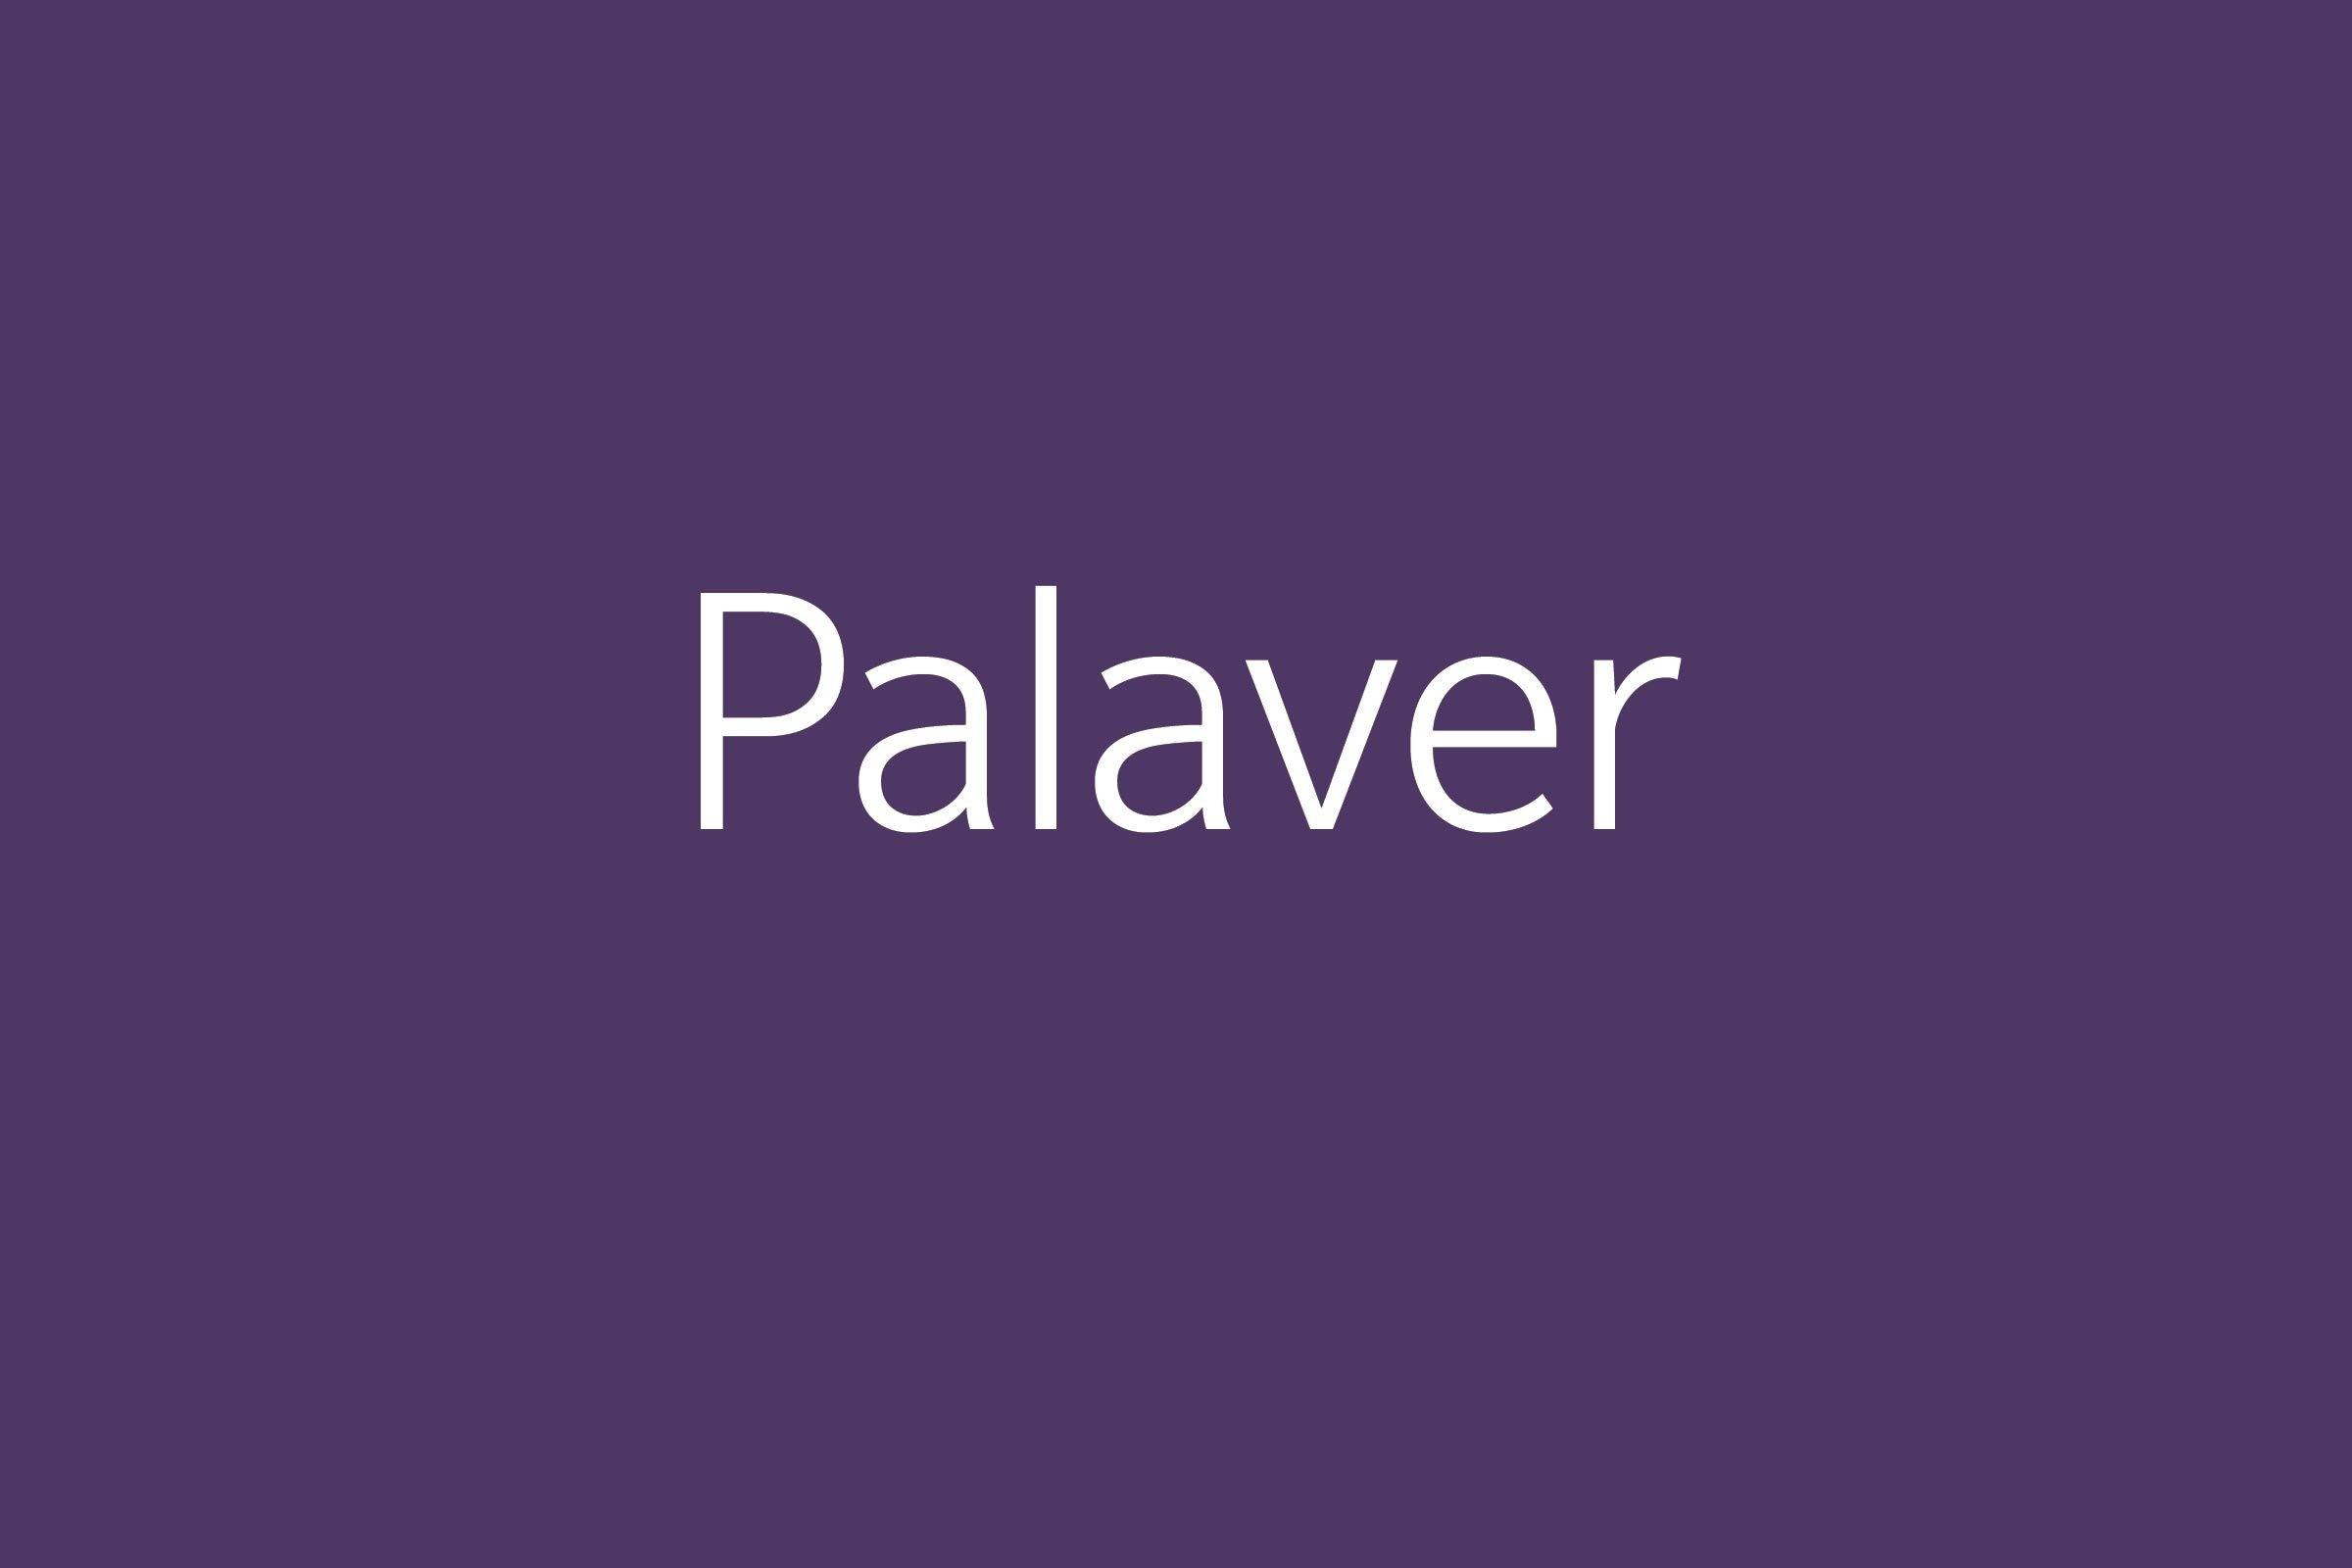 palaver funny word Funny words